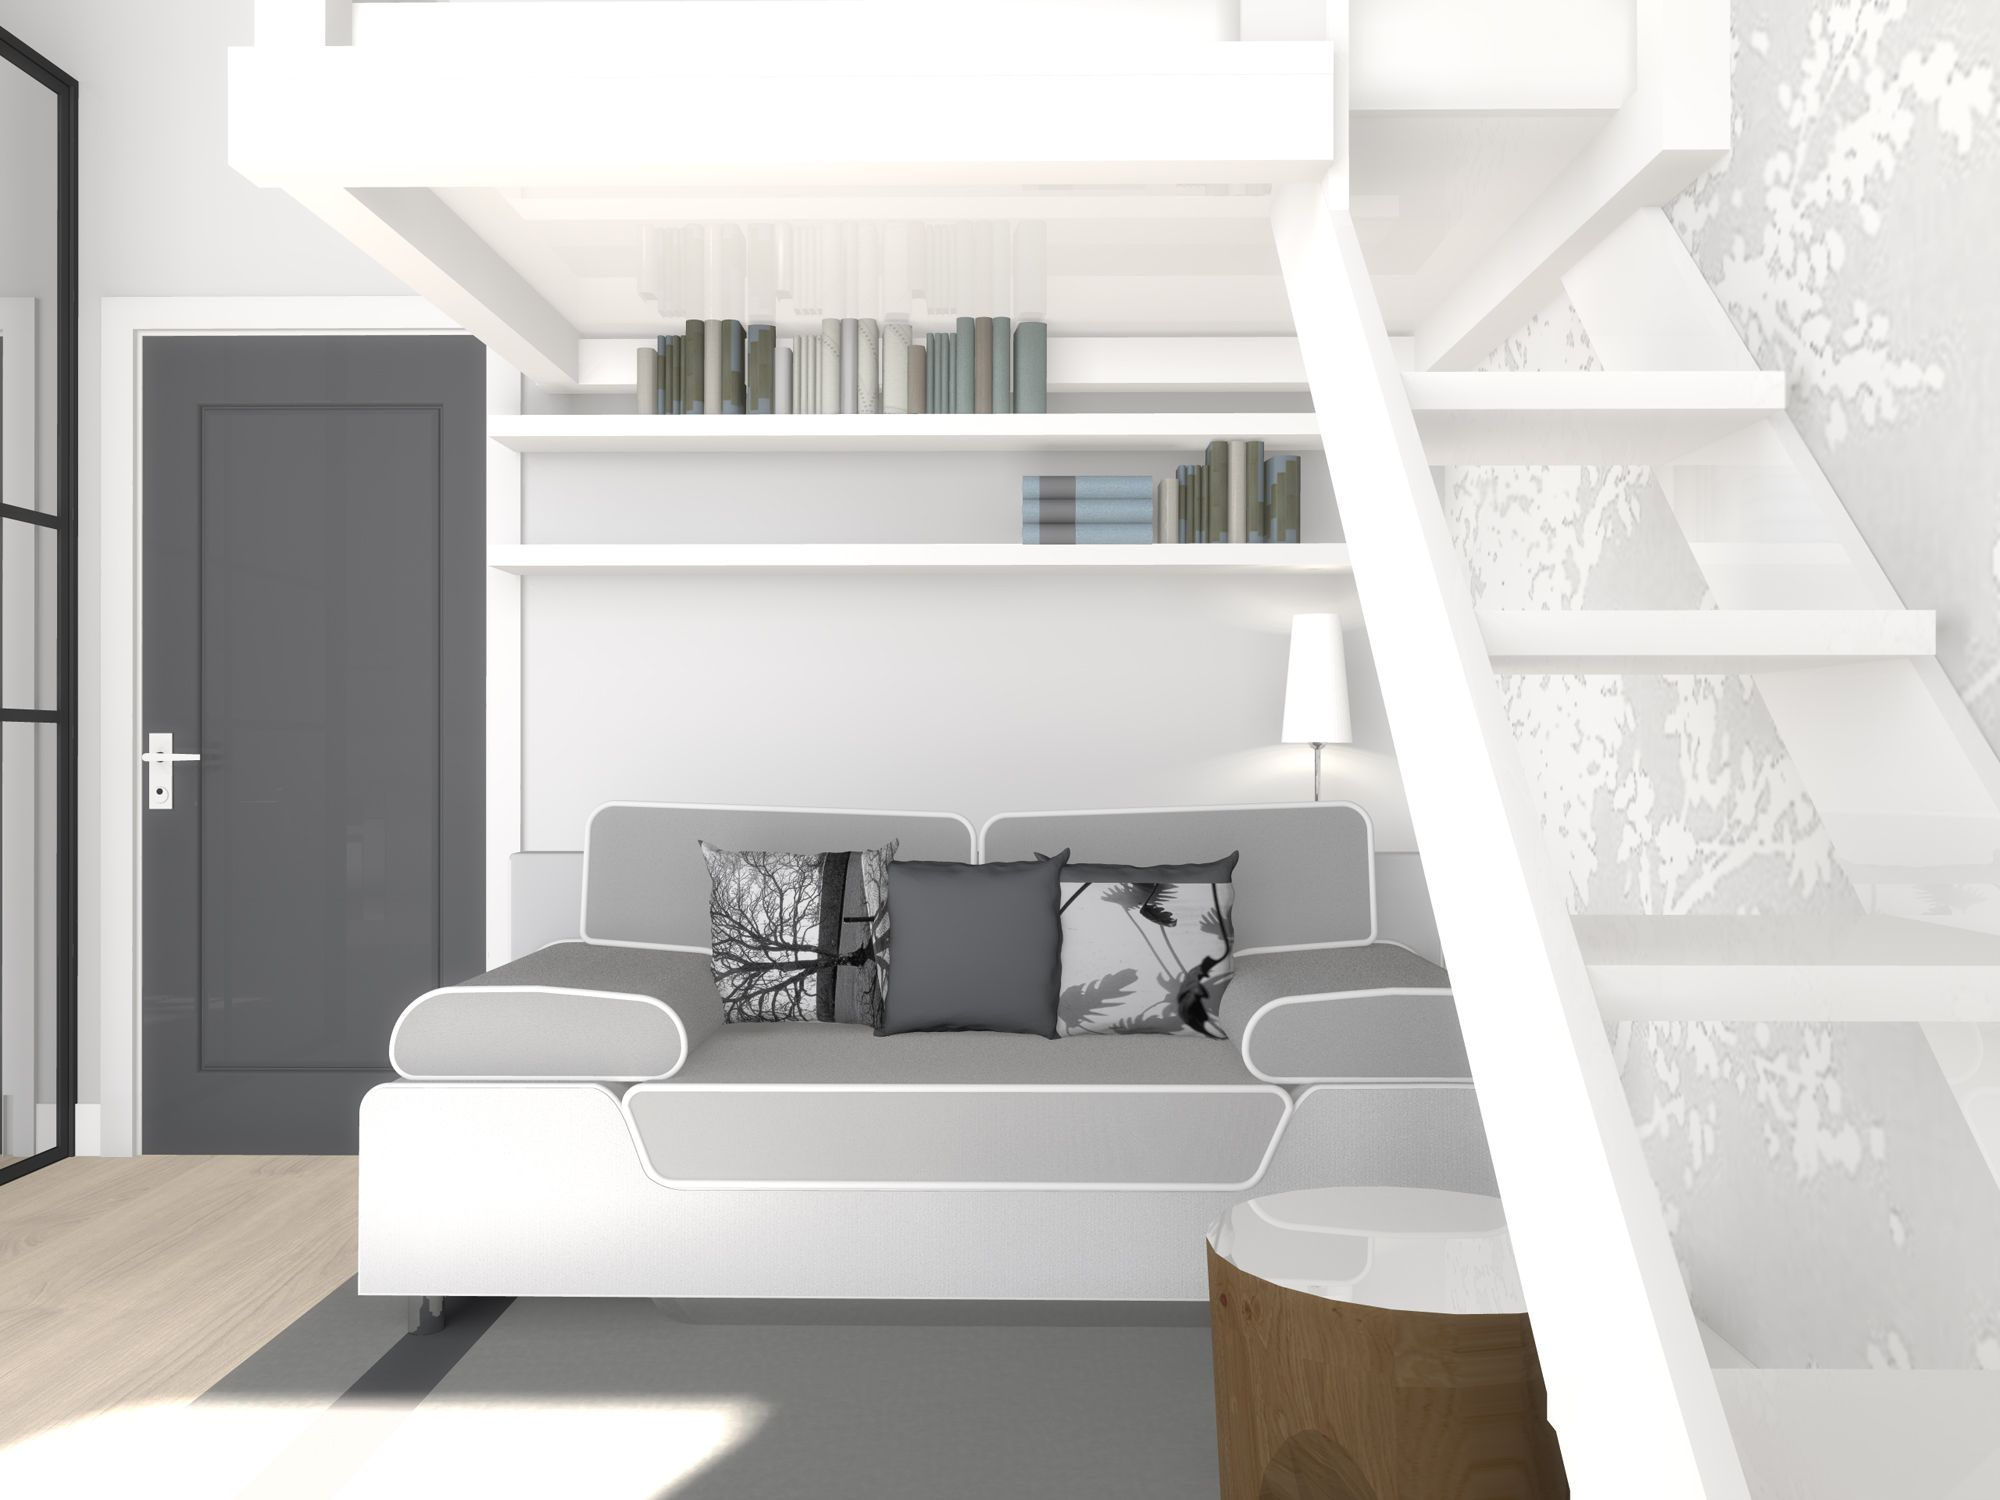 All in one 22m2 apartment for rent interior design - Rental apartment interior design ...